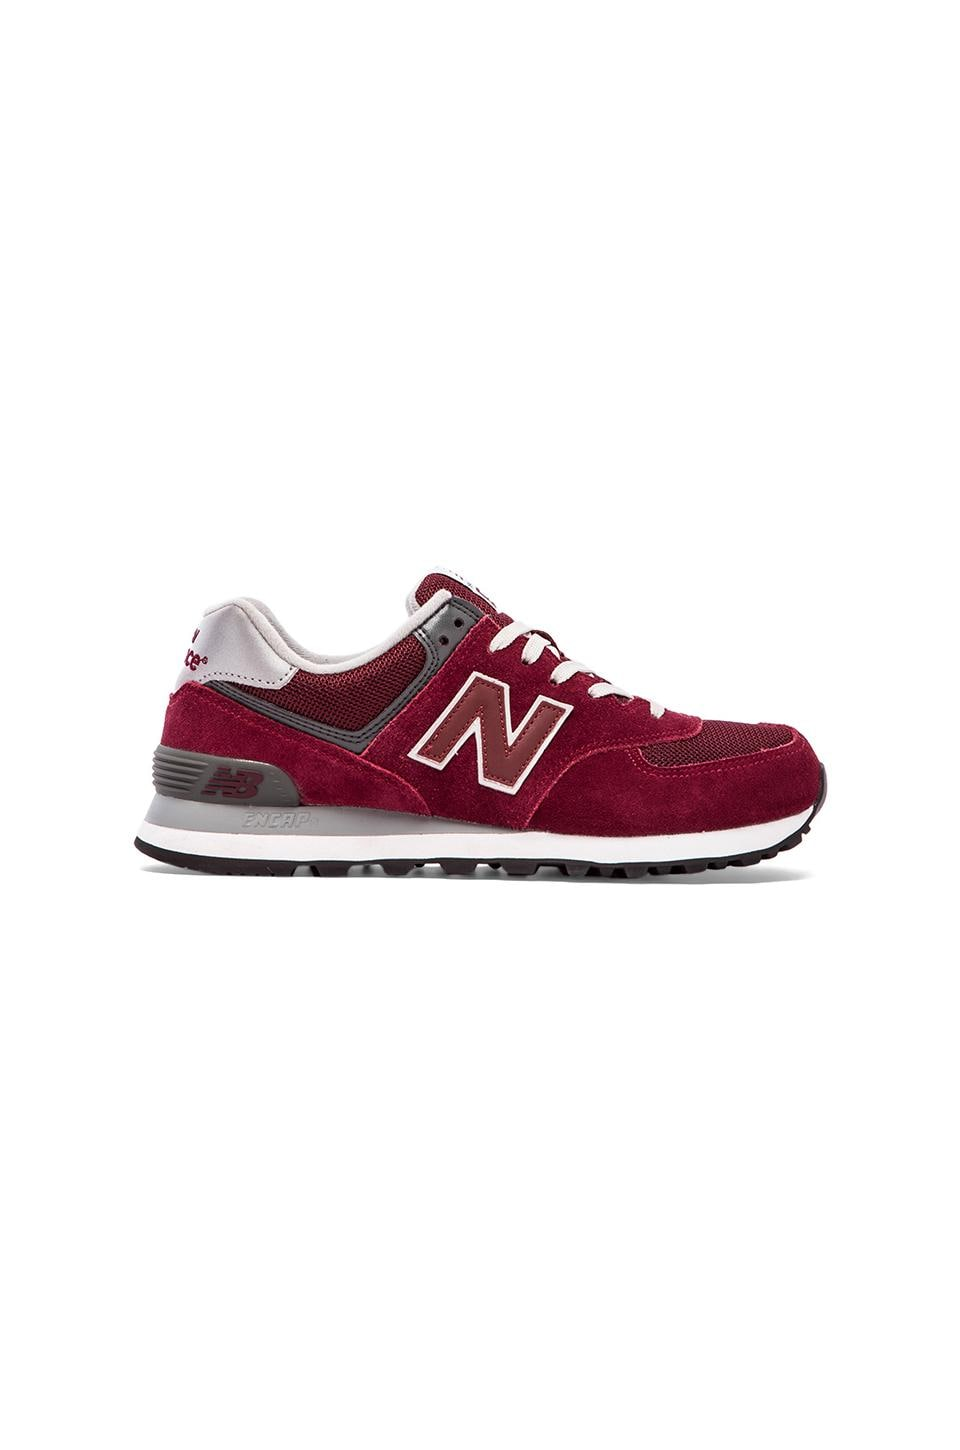 New Balance M574 in Burgundy